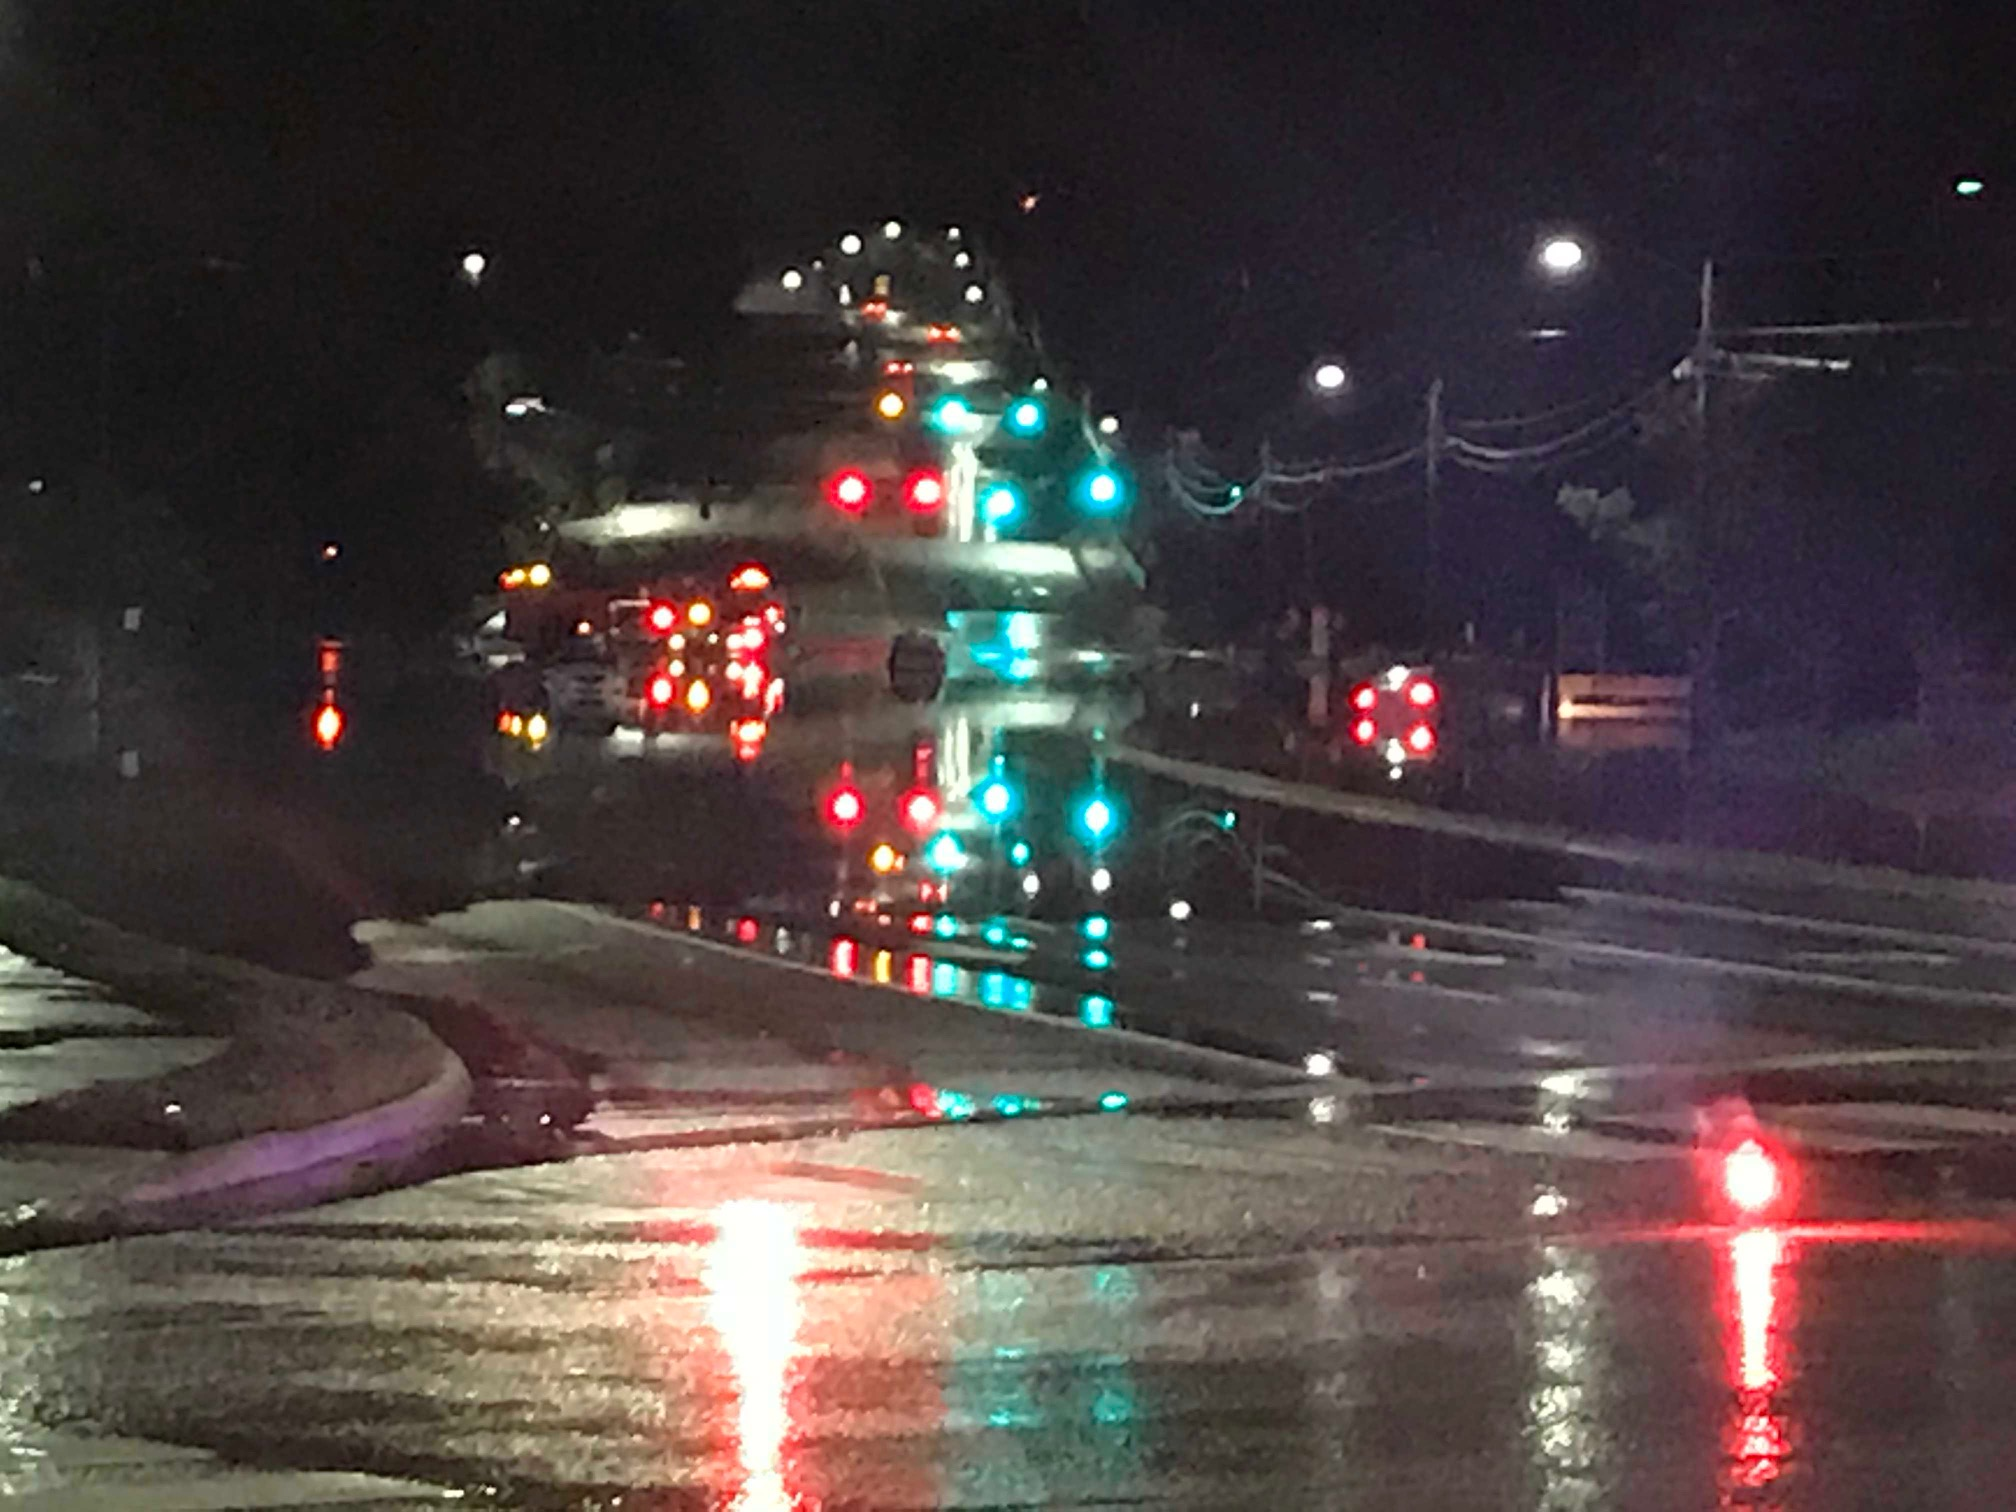 <div class='meta'><div class='origin-logo' data-origin='WTVD'></div><span class='caption-text' data-credit='Robert Judson'>Flooding on Glenwood Avenue.</span></div>